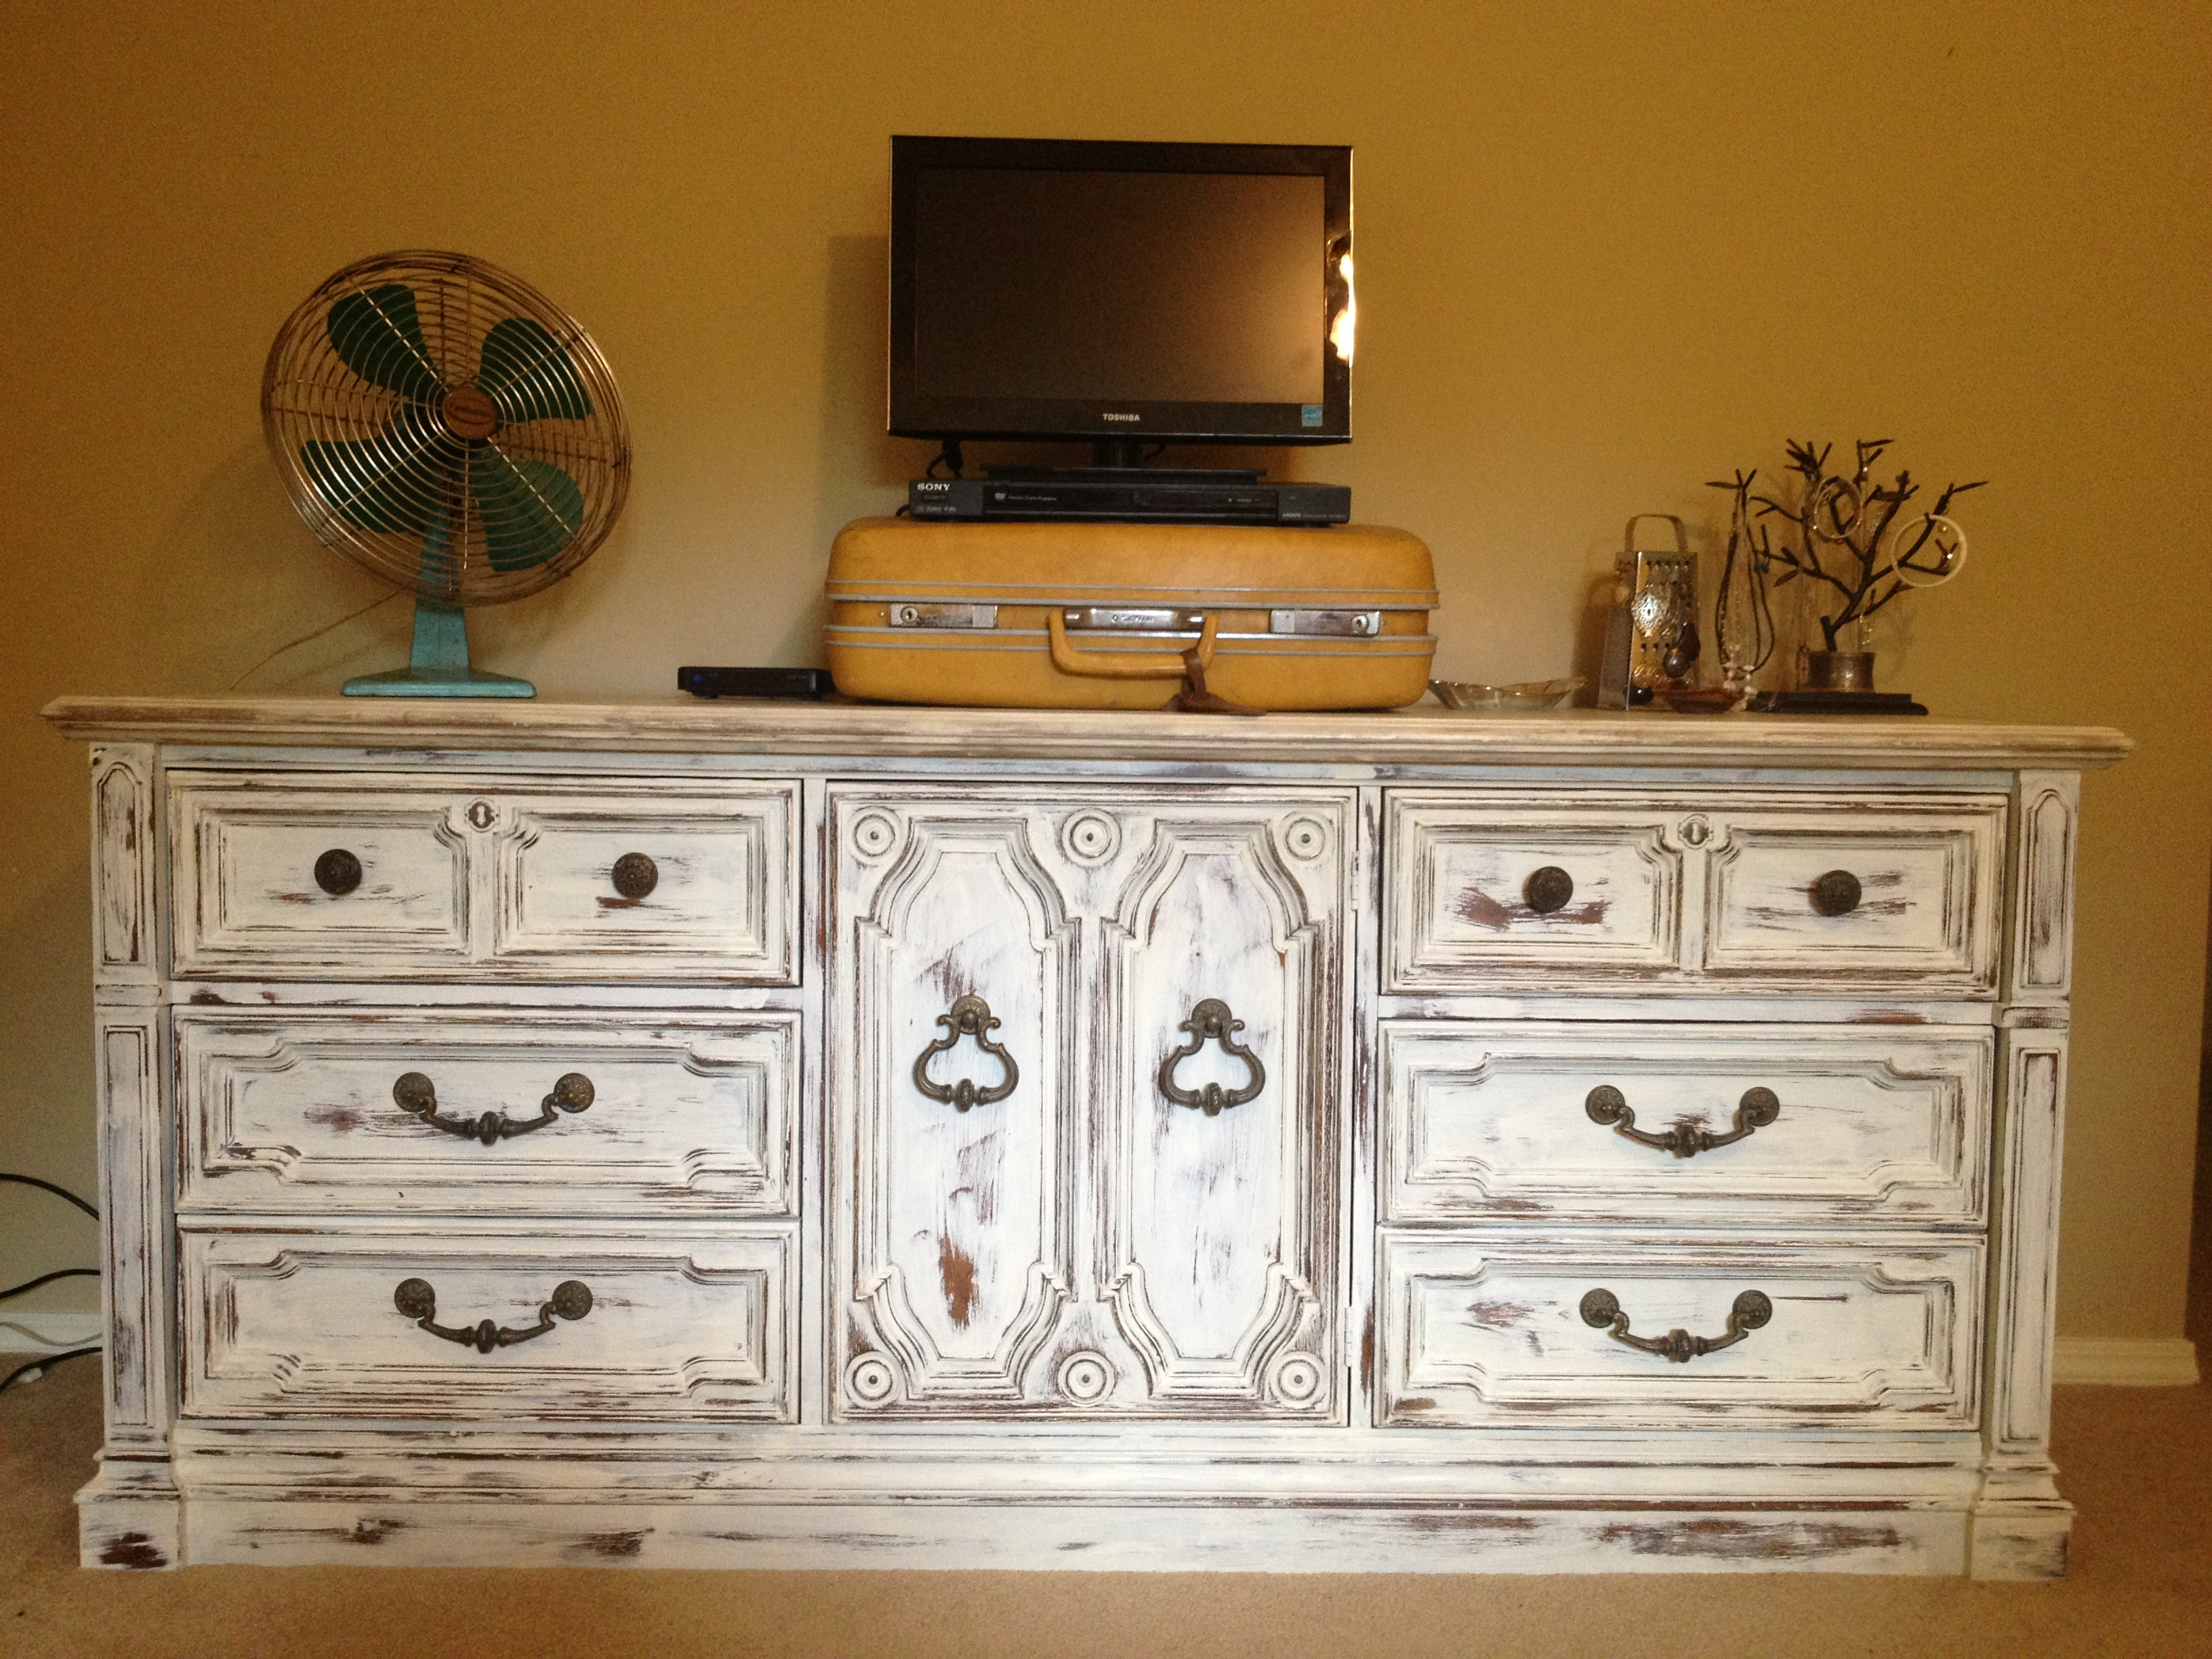 Second Hand Shabby Chic Bedroom Furniture Long Dressers For Sale